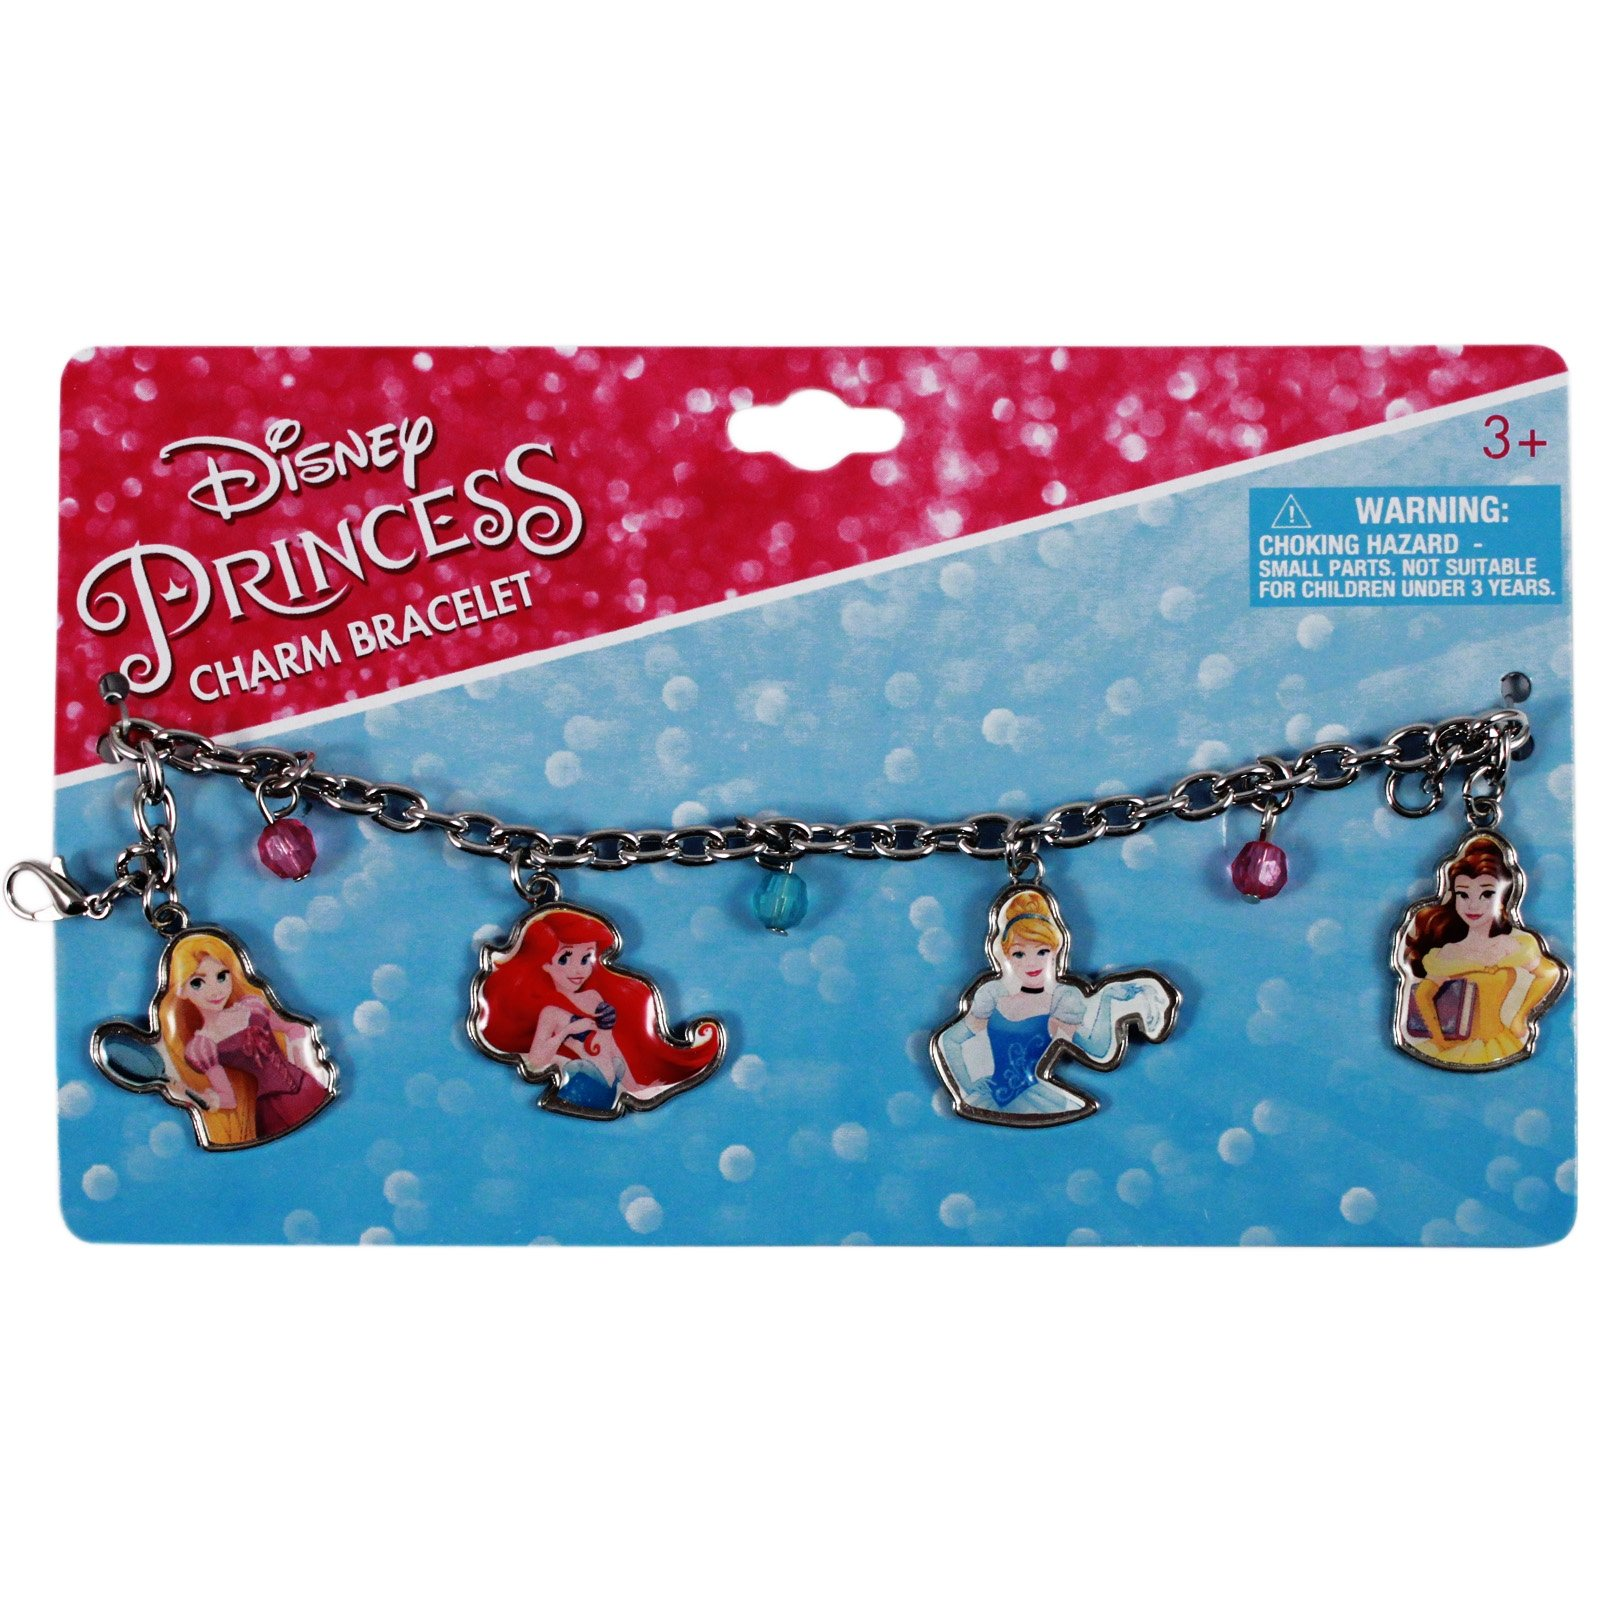 disney princess cinderella belle ariel aurora pretend play dress up jewelry charm bracelet with colorful and shiny beads retail packaging